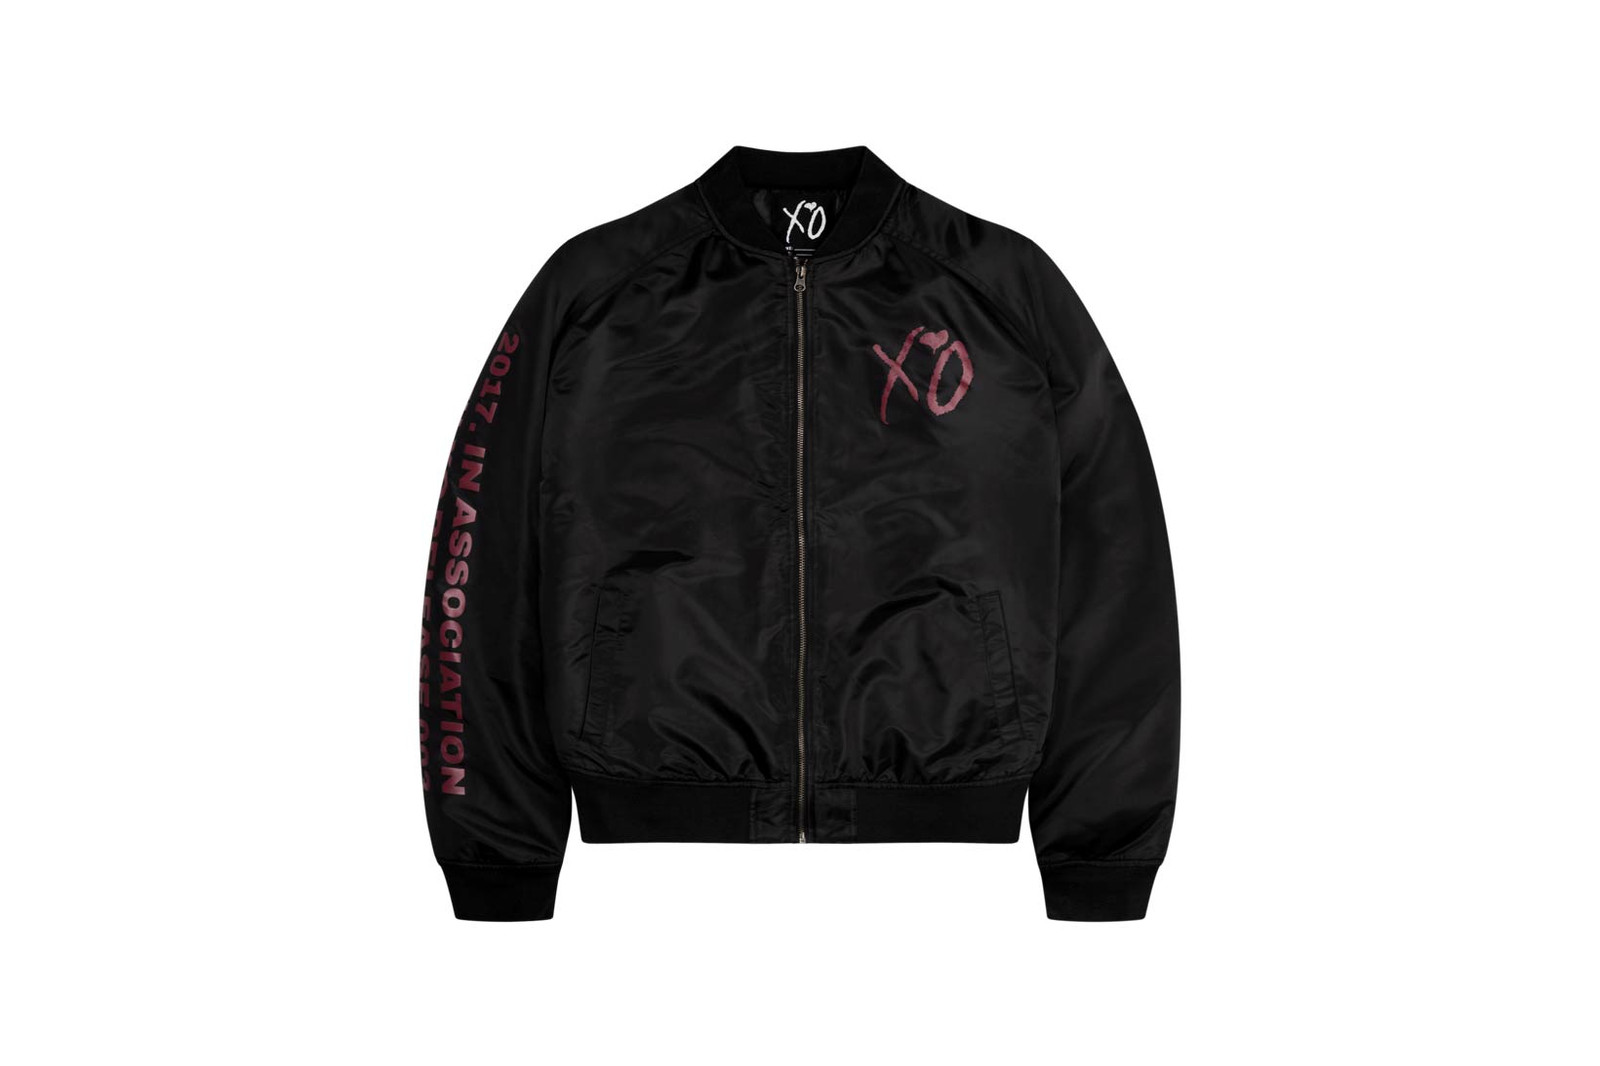 The Weeknd 2017 003 Part Two Collection